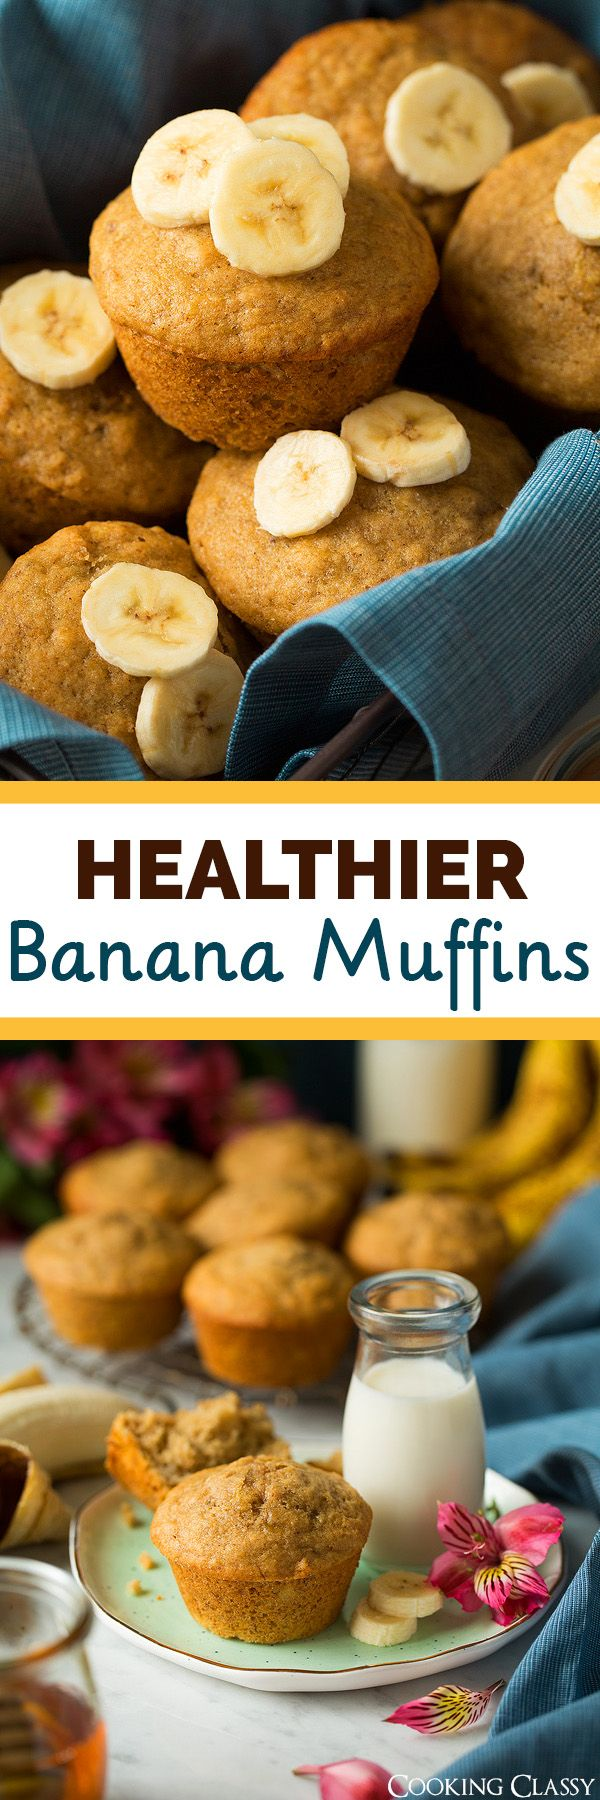 Healthier Whole Wheat Honey Banana Muffins - Cooking Classy